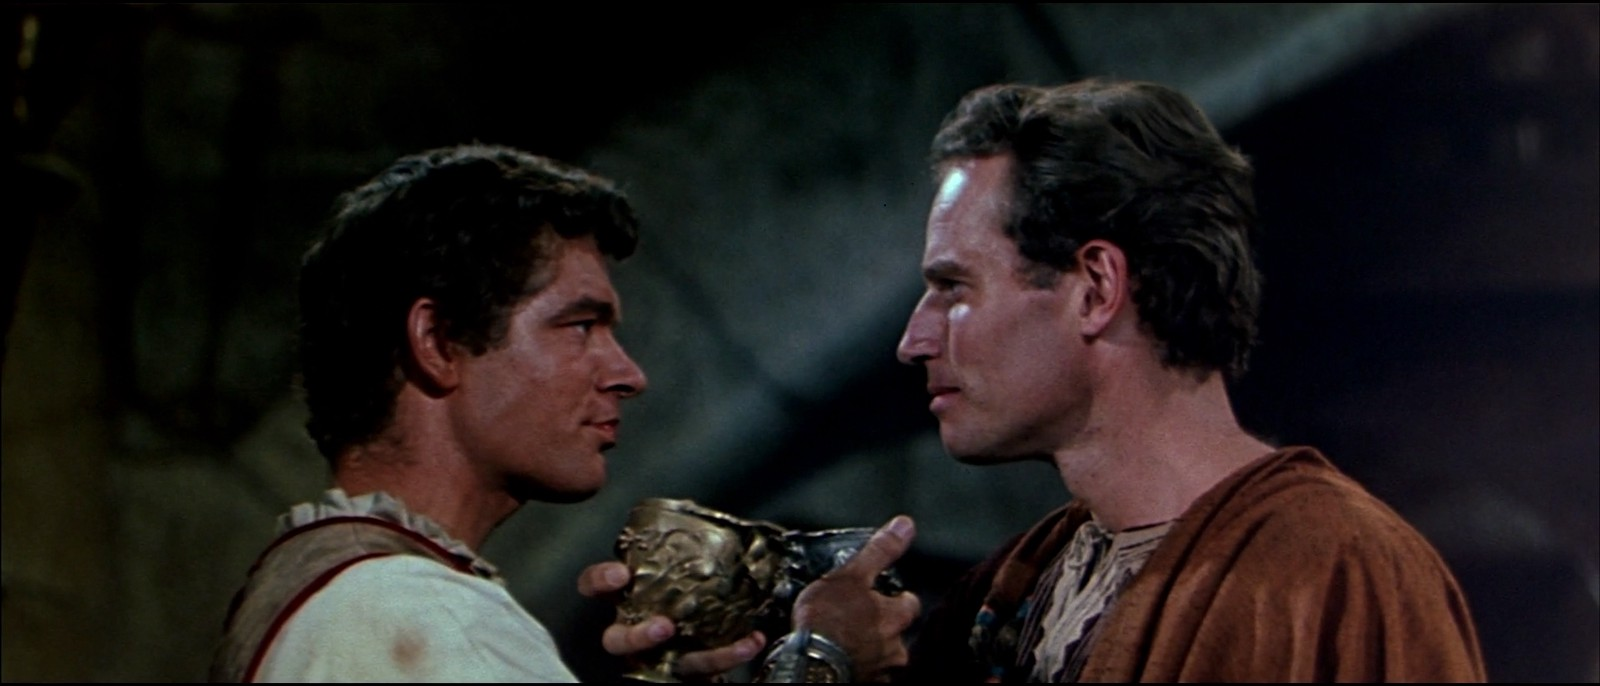 Stephen Boyd and Charlton Heston in 'Ben Hur,' as seen in 'The Celluloid Closet'